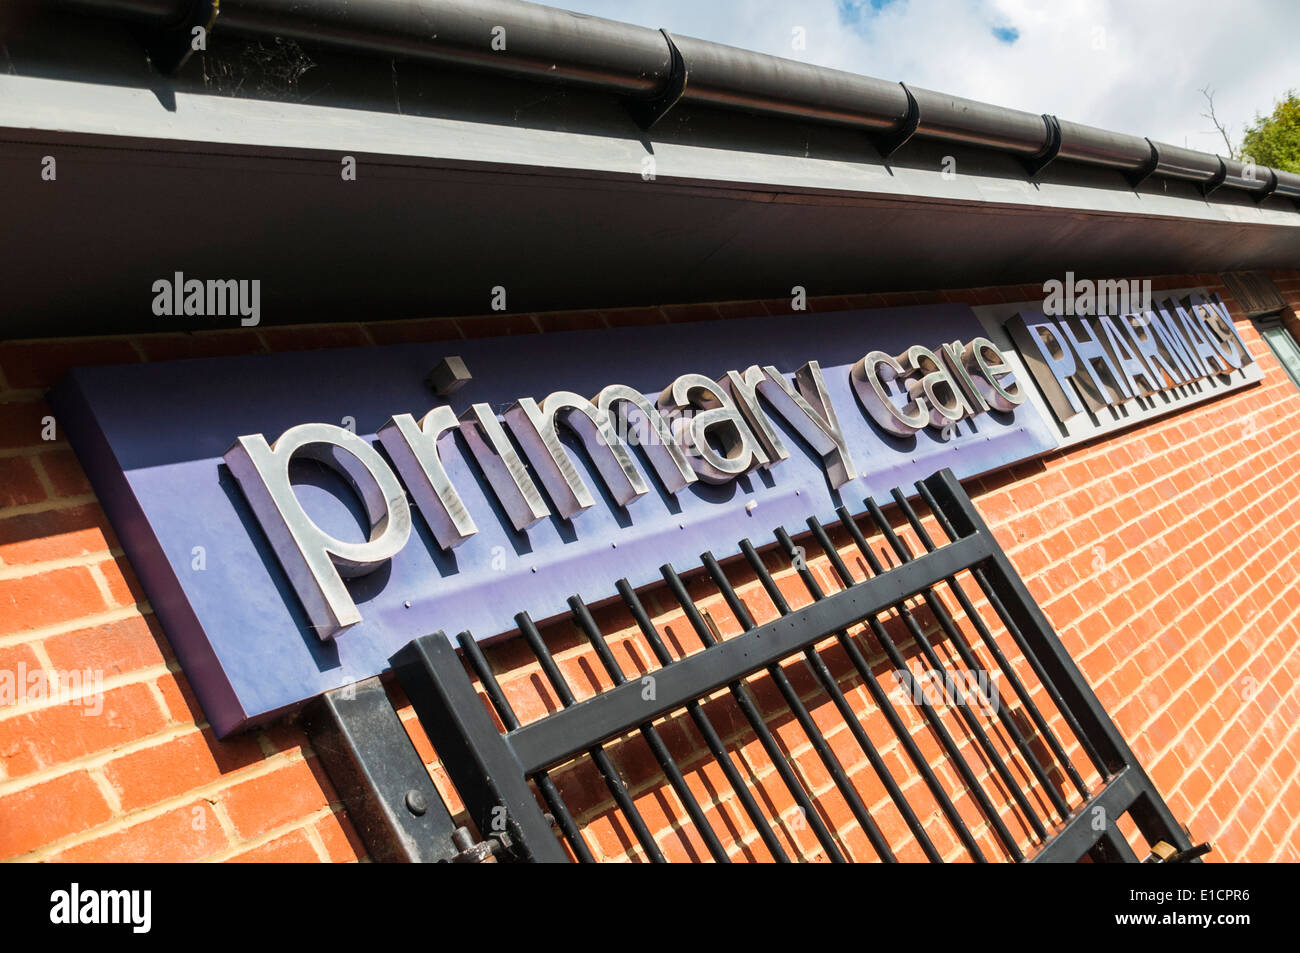 Primary Care Pharmacy sign on a brick wall outside an NHS pharmacy - Stock Image